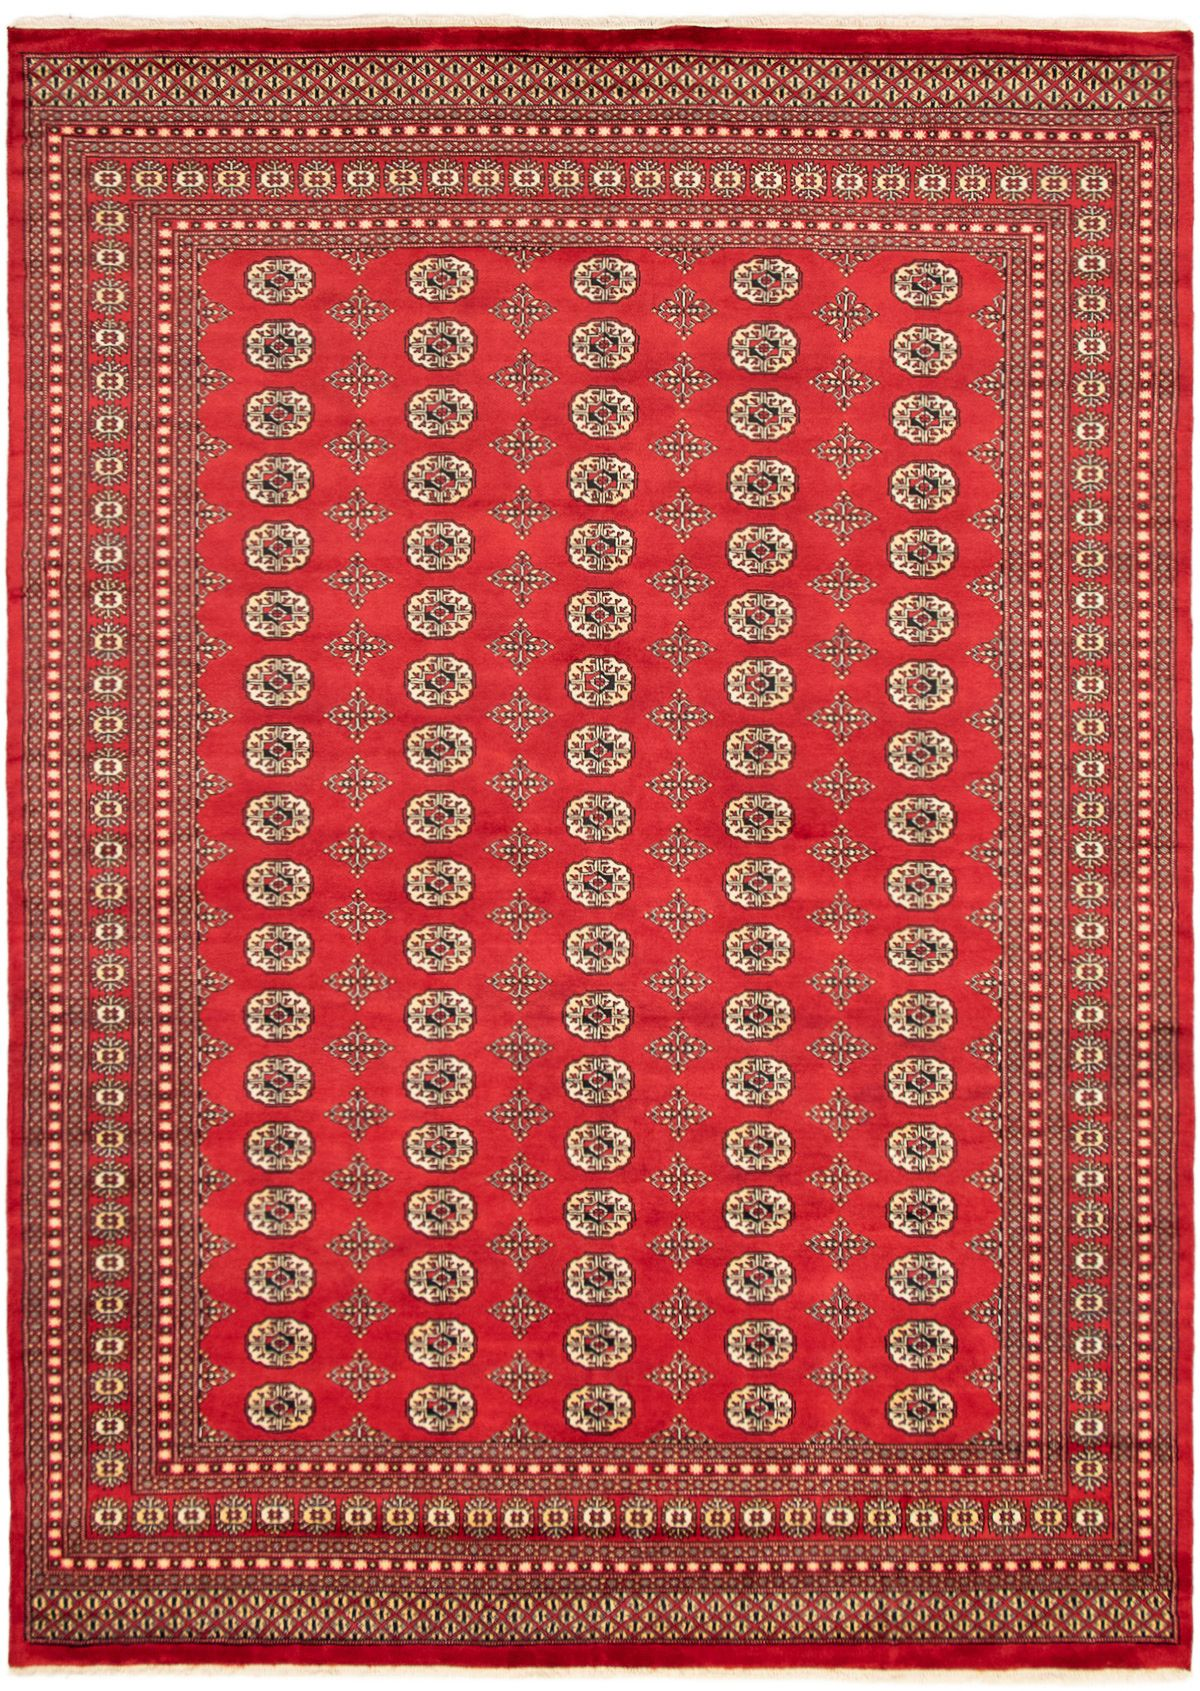 "Hand-knotted Finest Peshawar Bokhara Red Wool Rug 9'3"" x 12'2"" Size: 9'3"" x 12'2"""